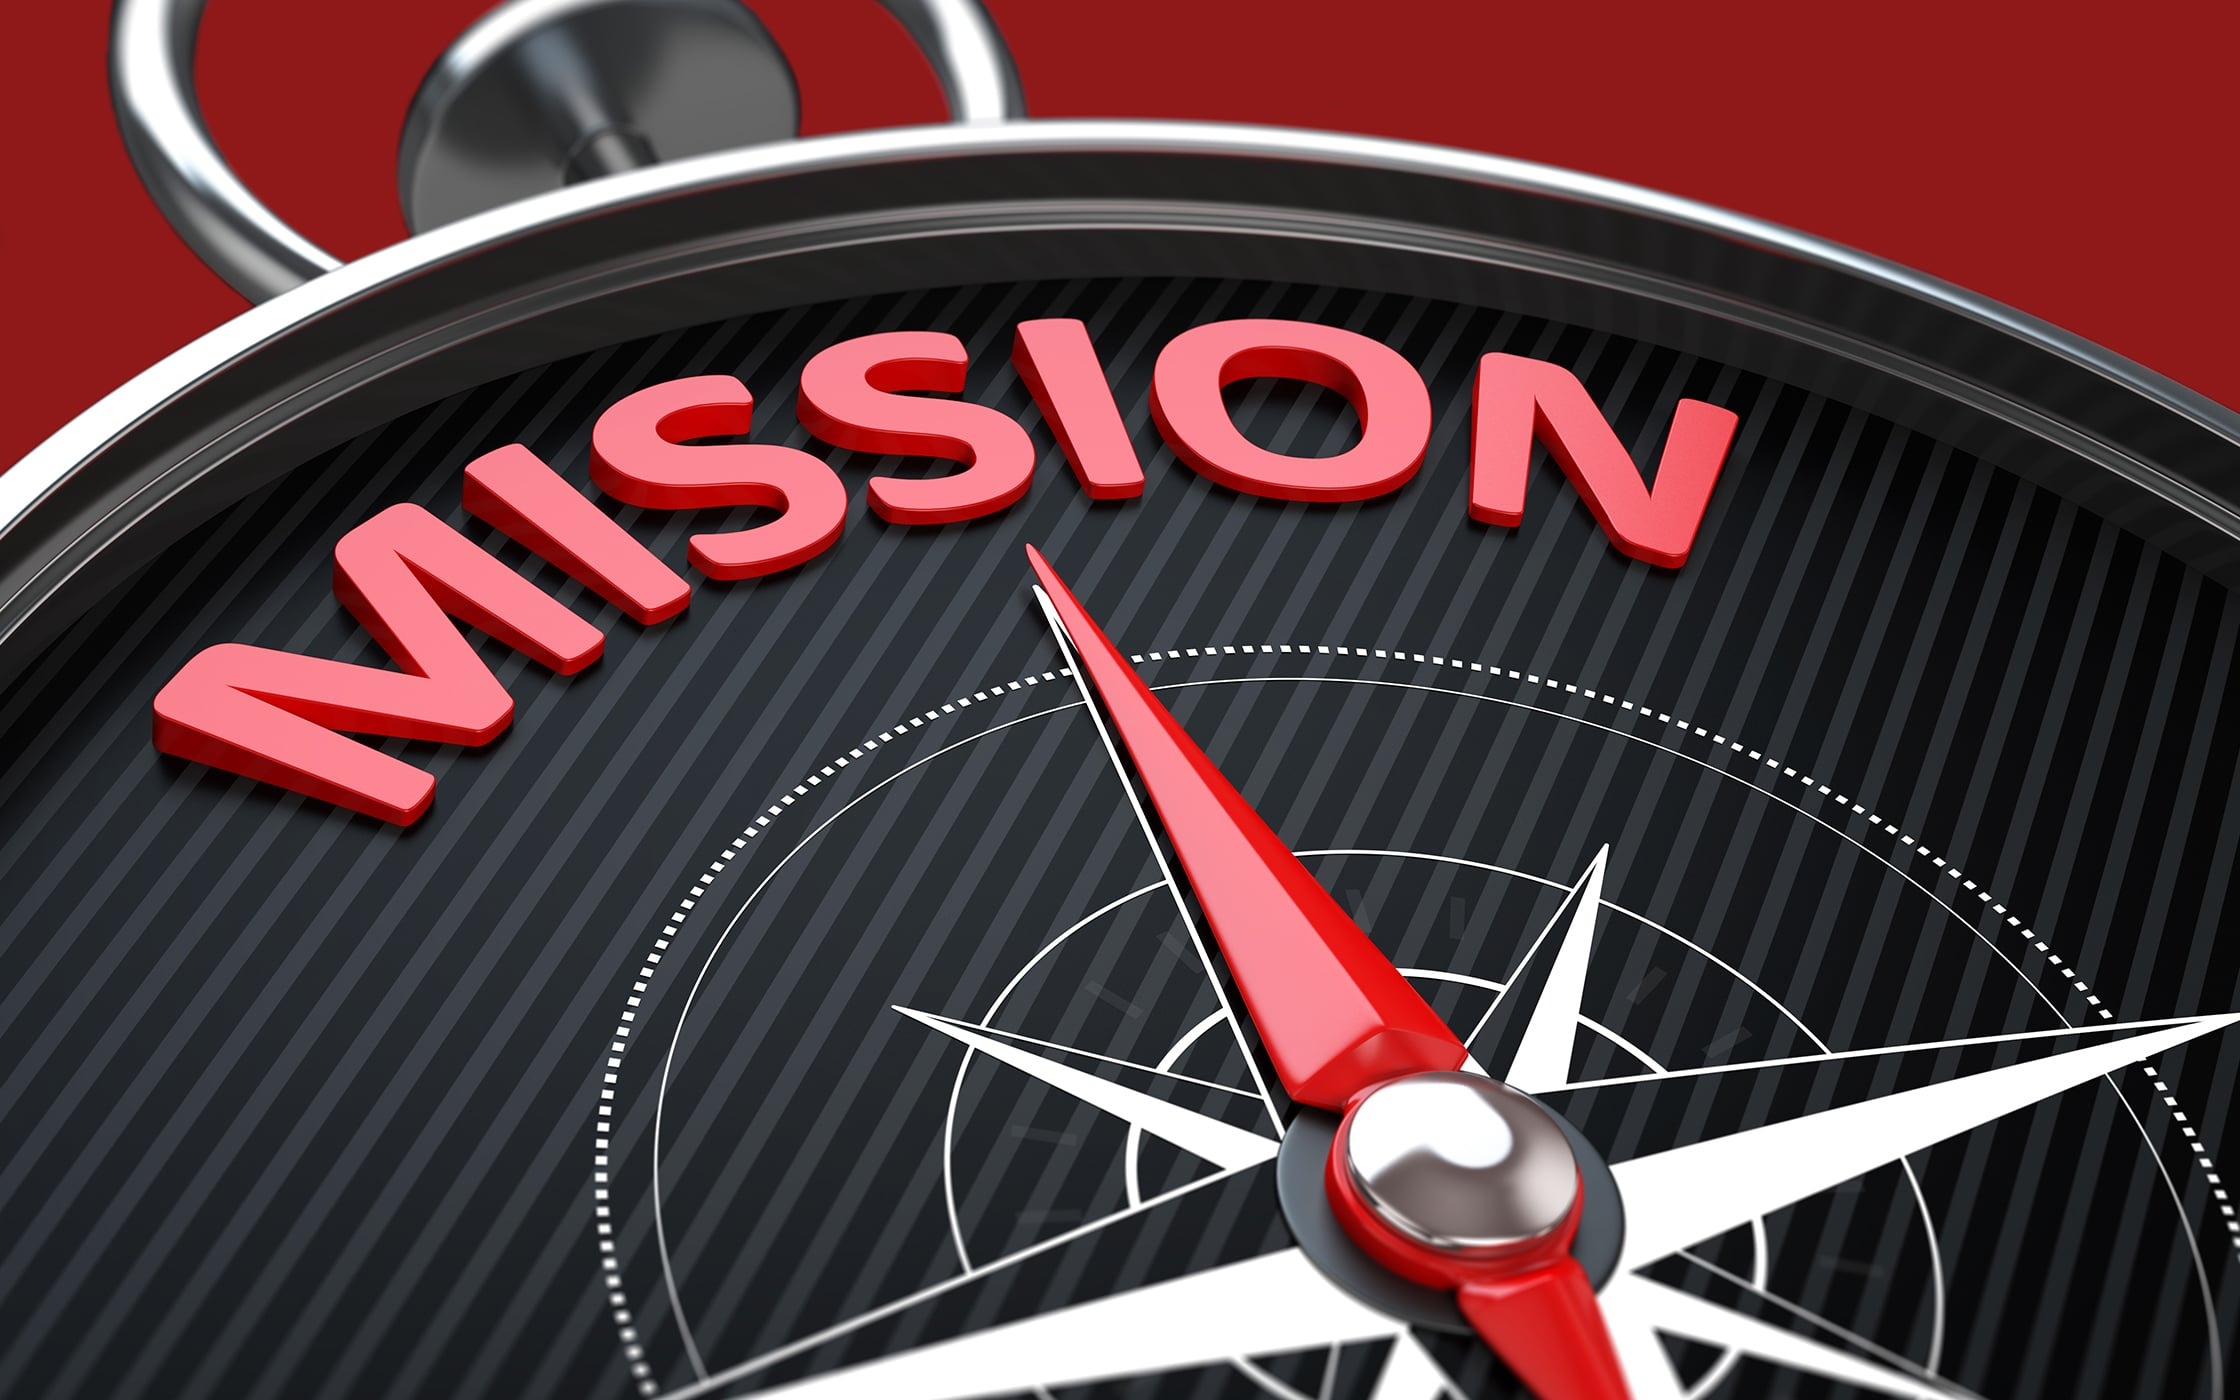 Make A Statement! It's Time to Choose Your Company Mission Statement